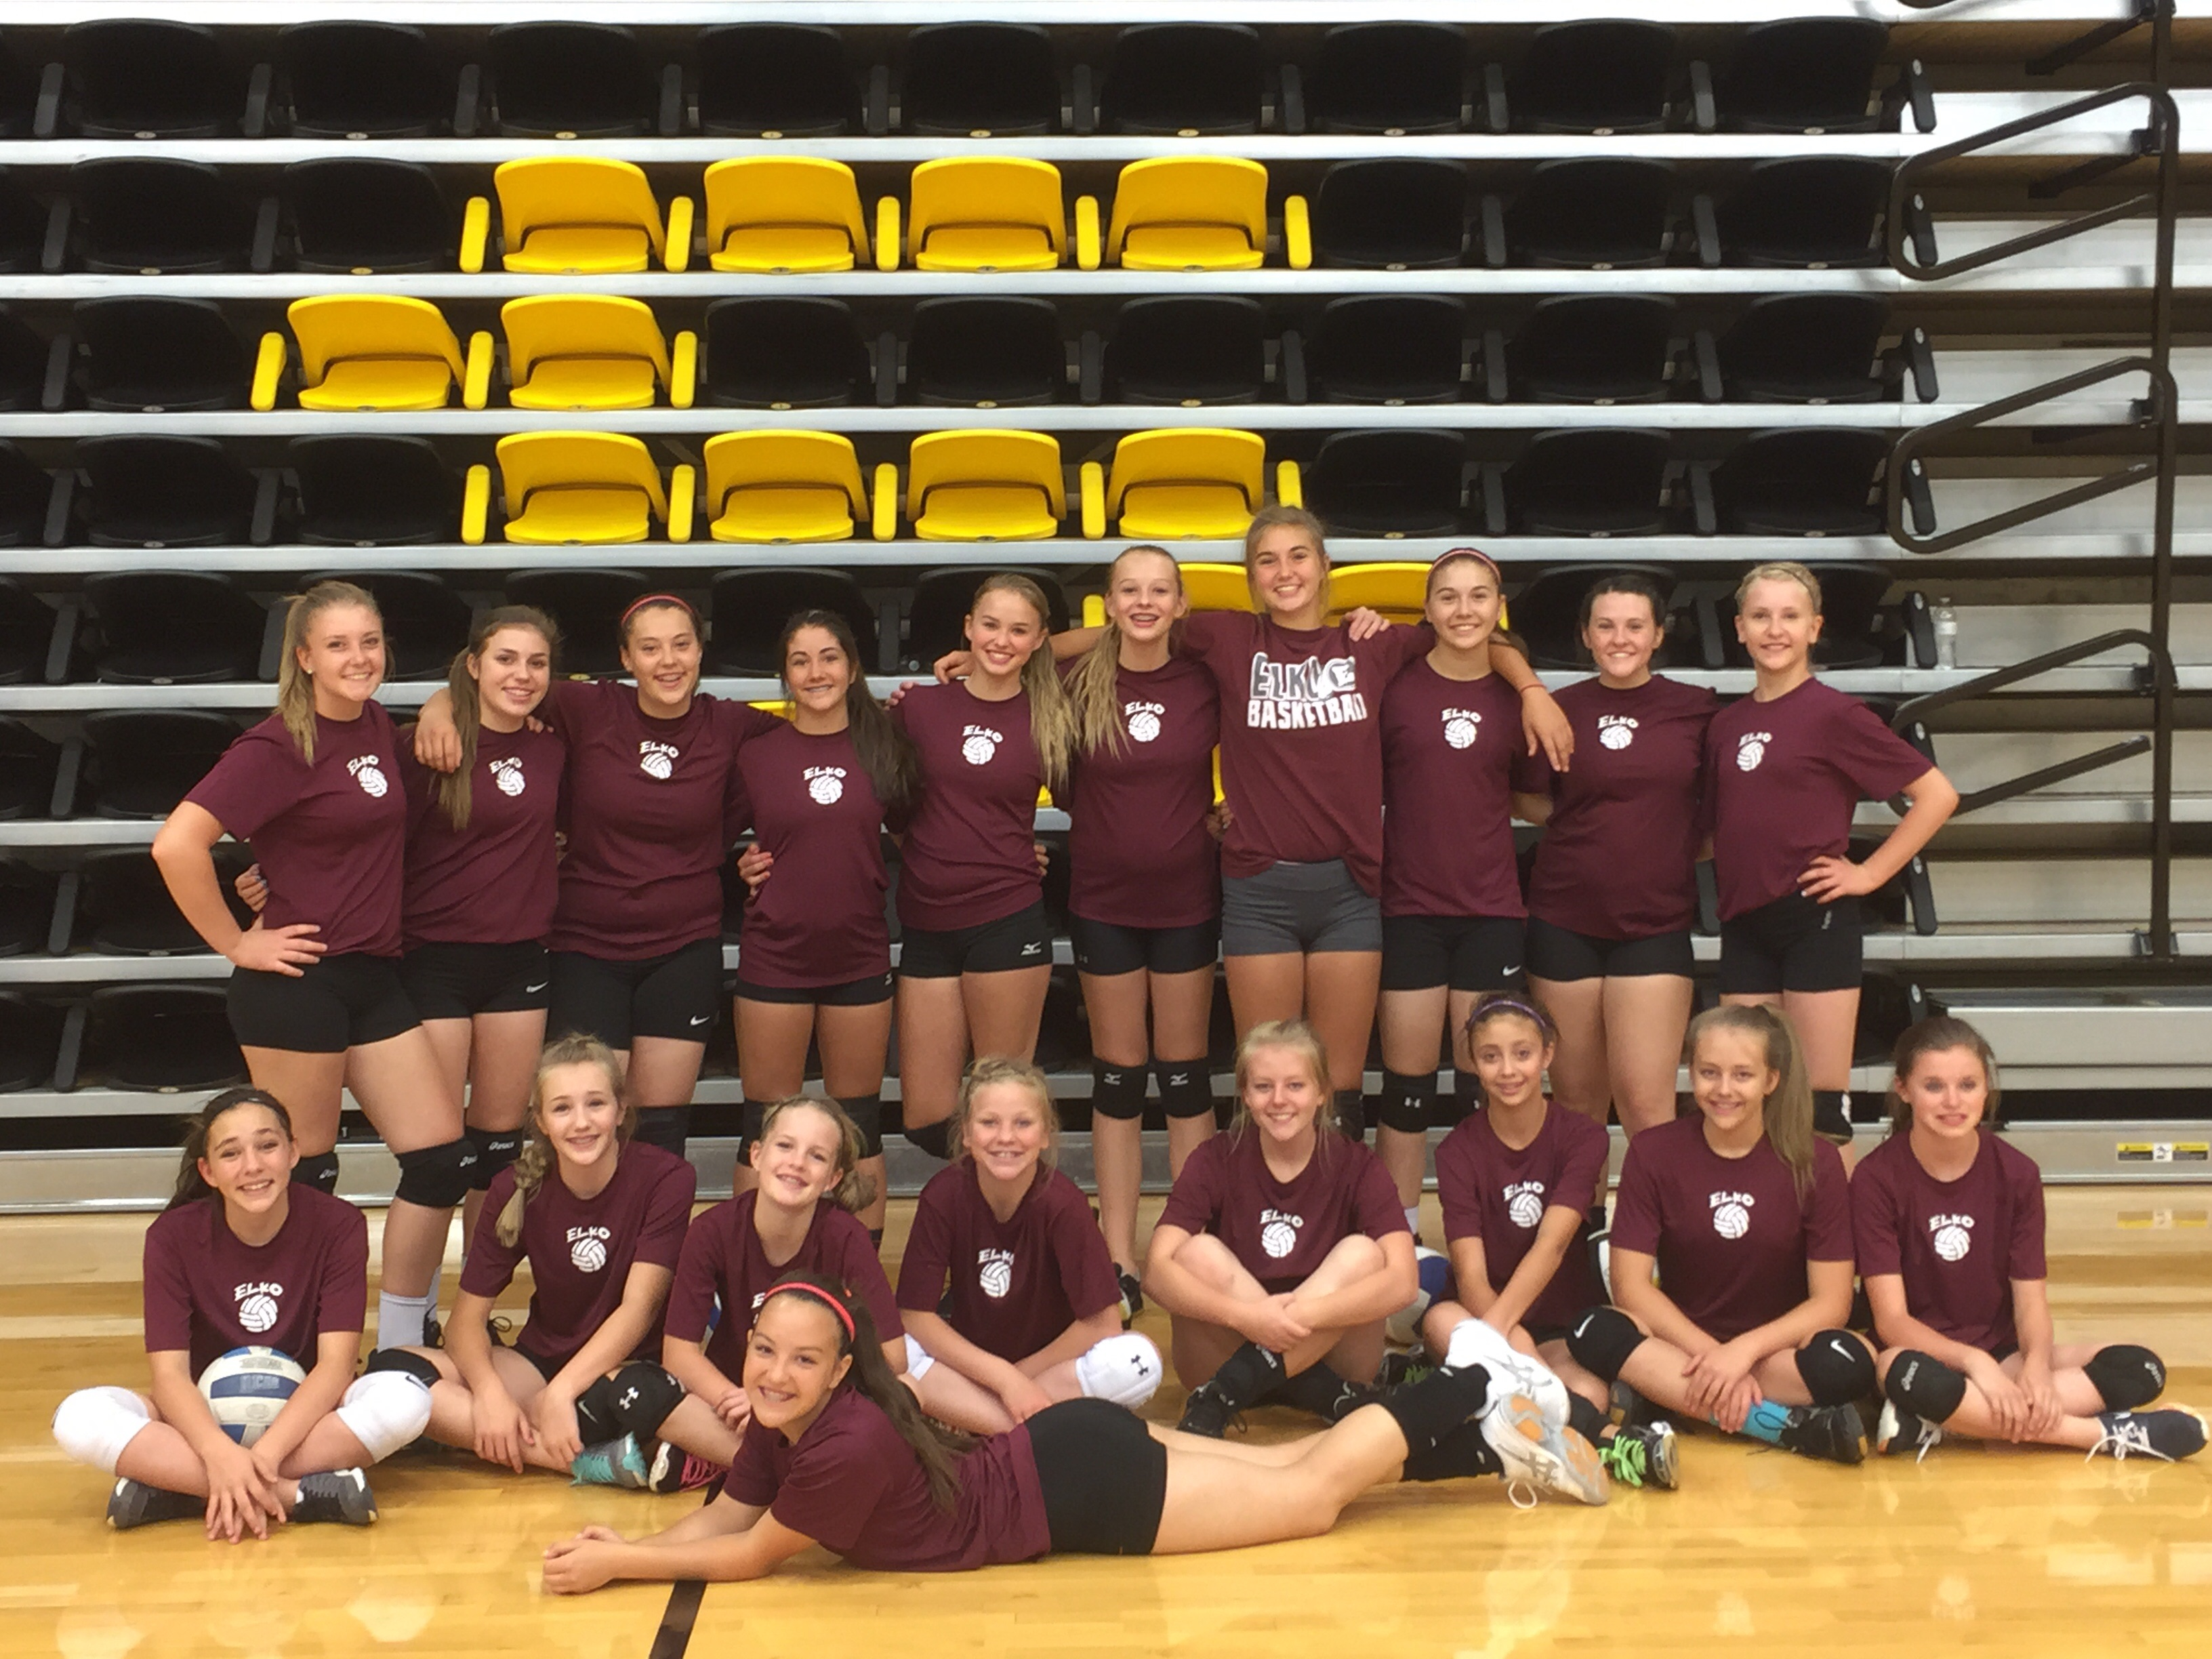 35a488035 Custom T-Shirts for Elko Volleyball At The Csi Volleyball Camp ...